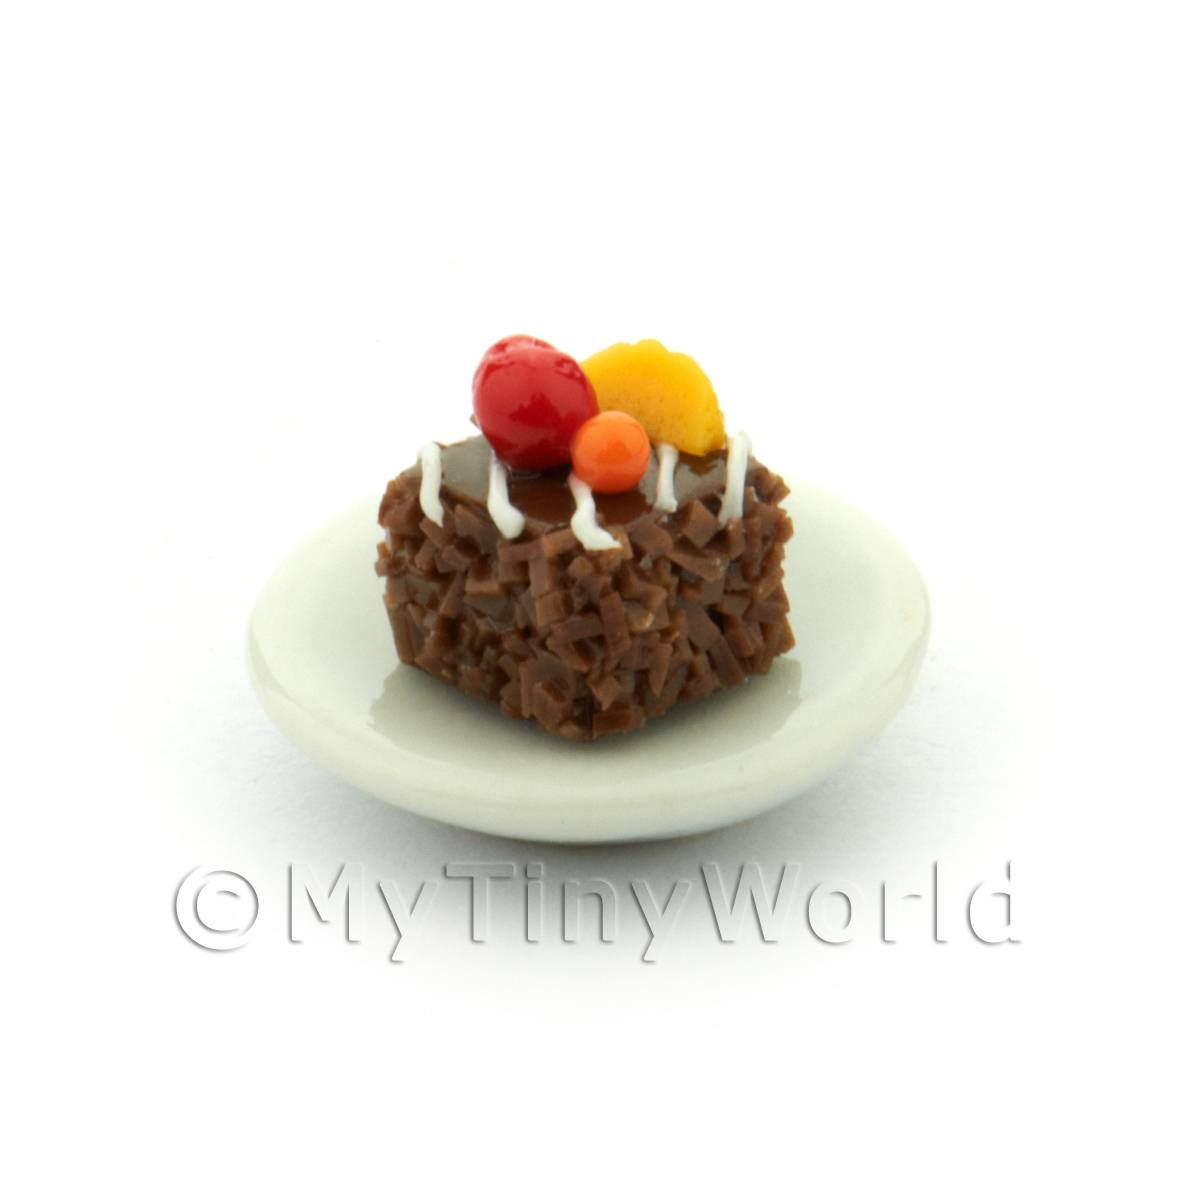 Dolls House Miniature Chocolate Square With Glazed Fruit